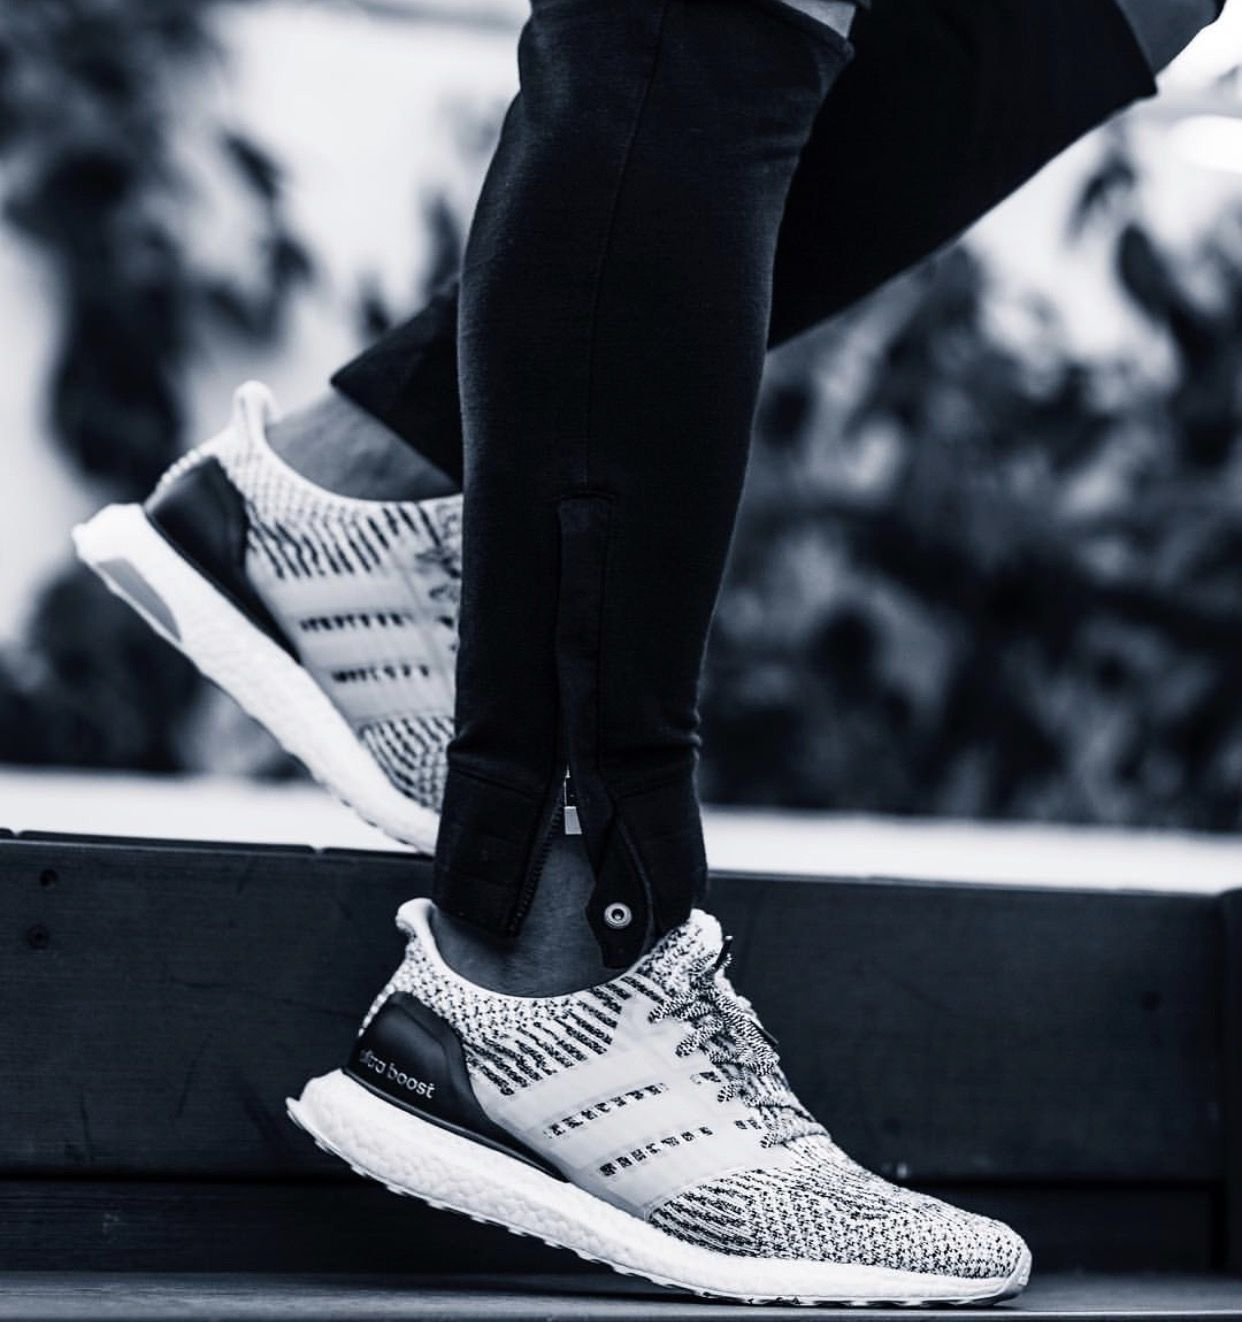 41feede7c5903 Adidas Ultra Boost 3.0